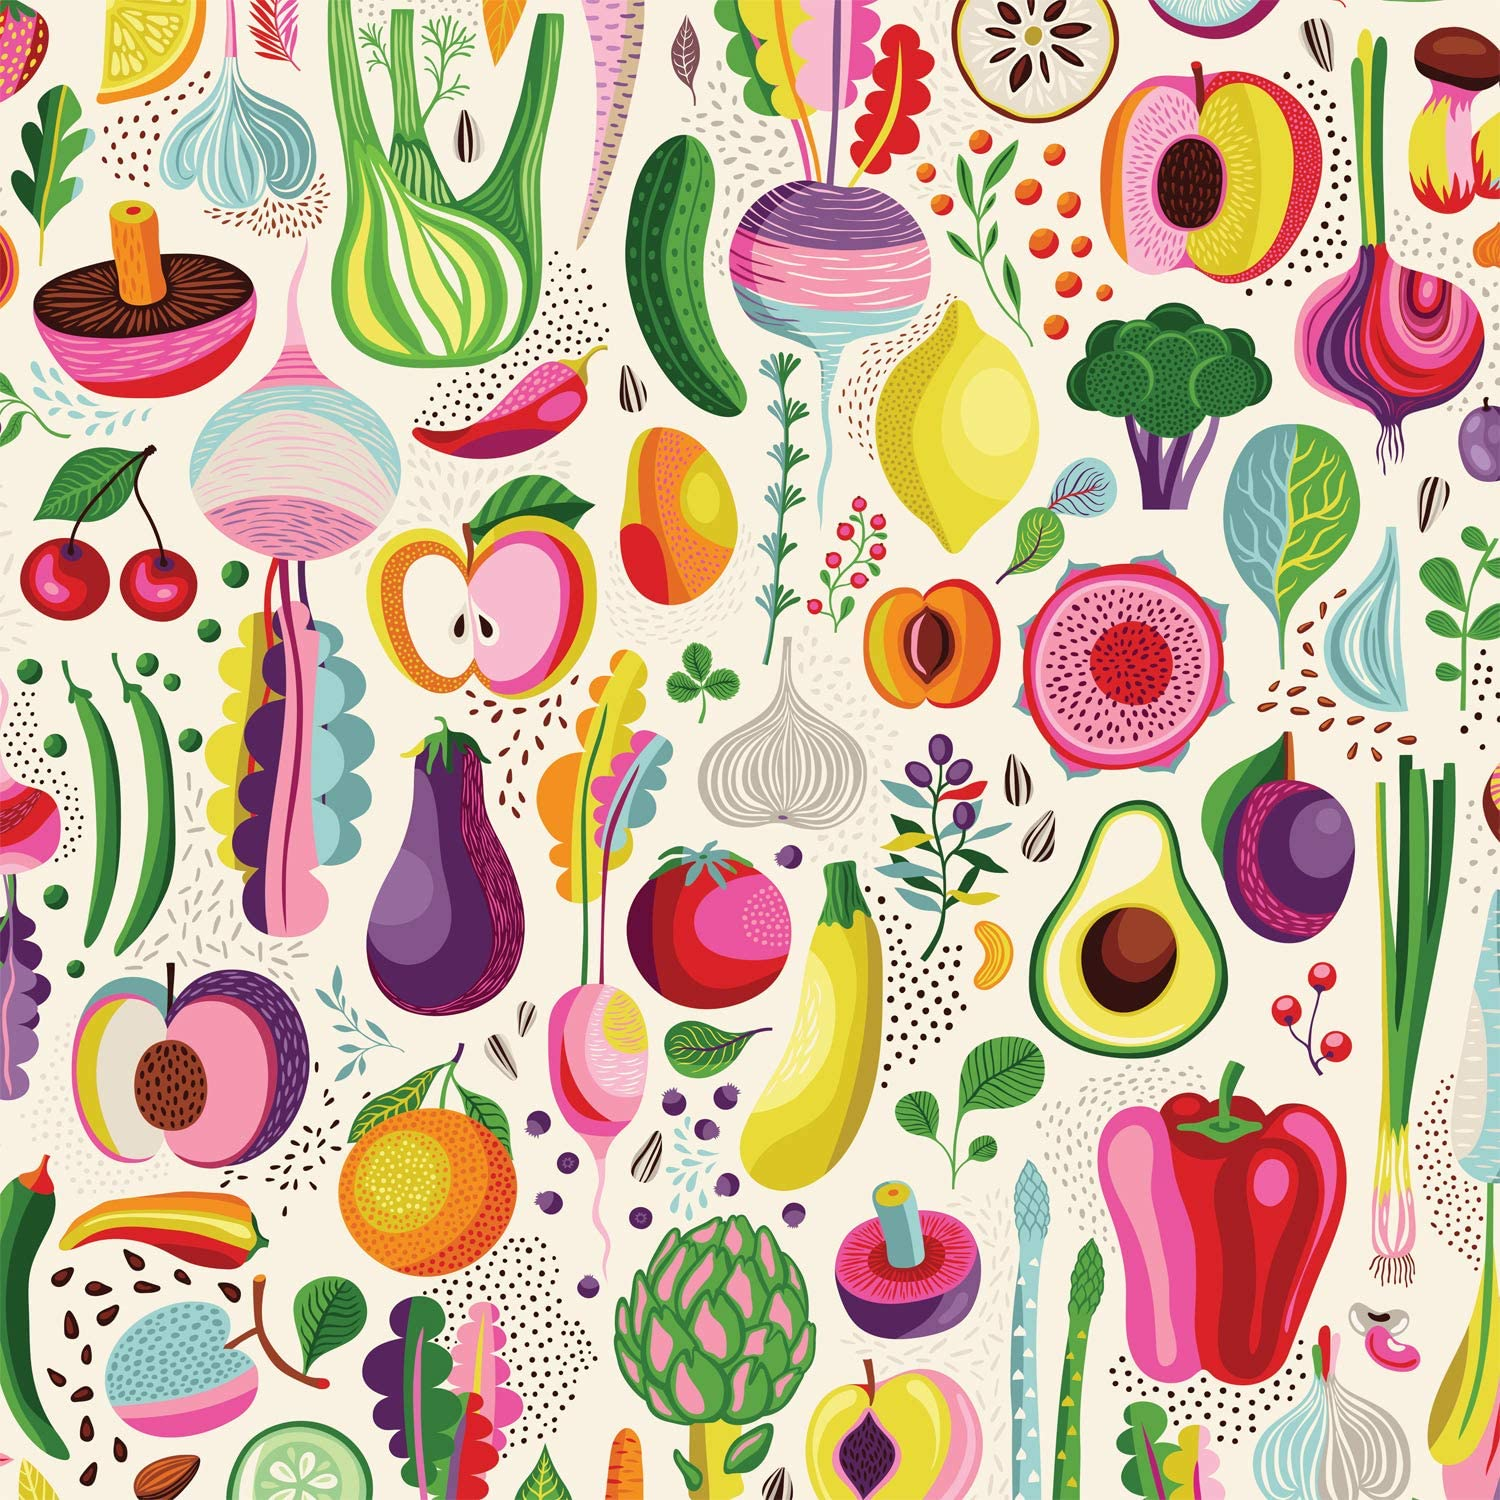 Fruits and Veggies Food and Drink Jigsaw Puzzle